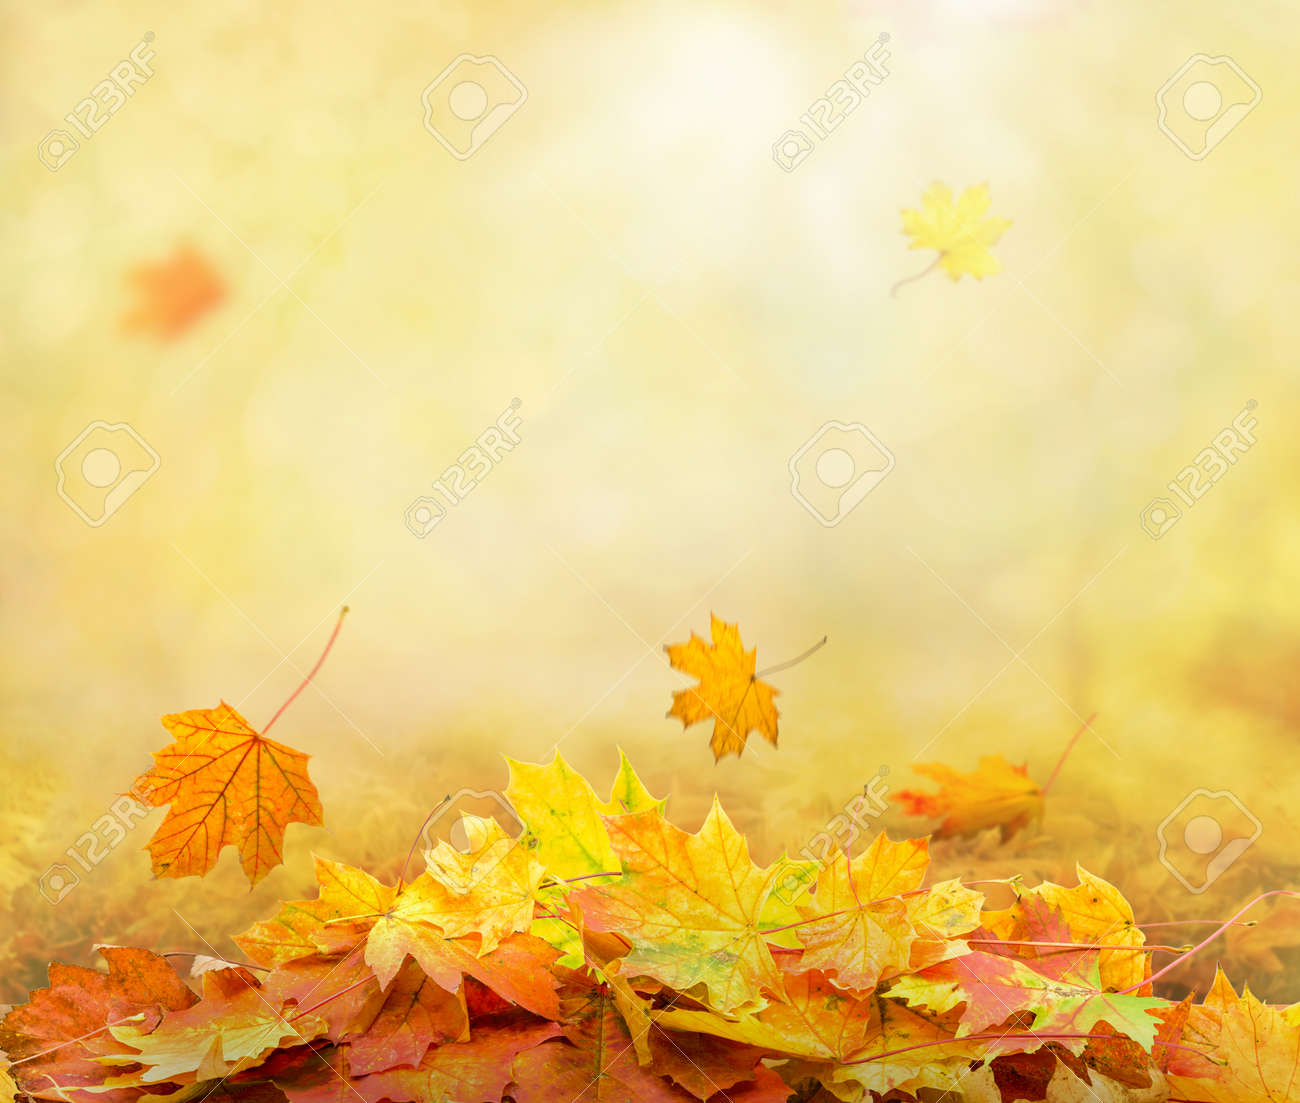 pile of autumn leaves in park, abstract background - 154812529